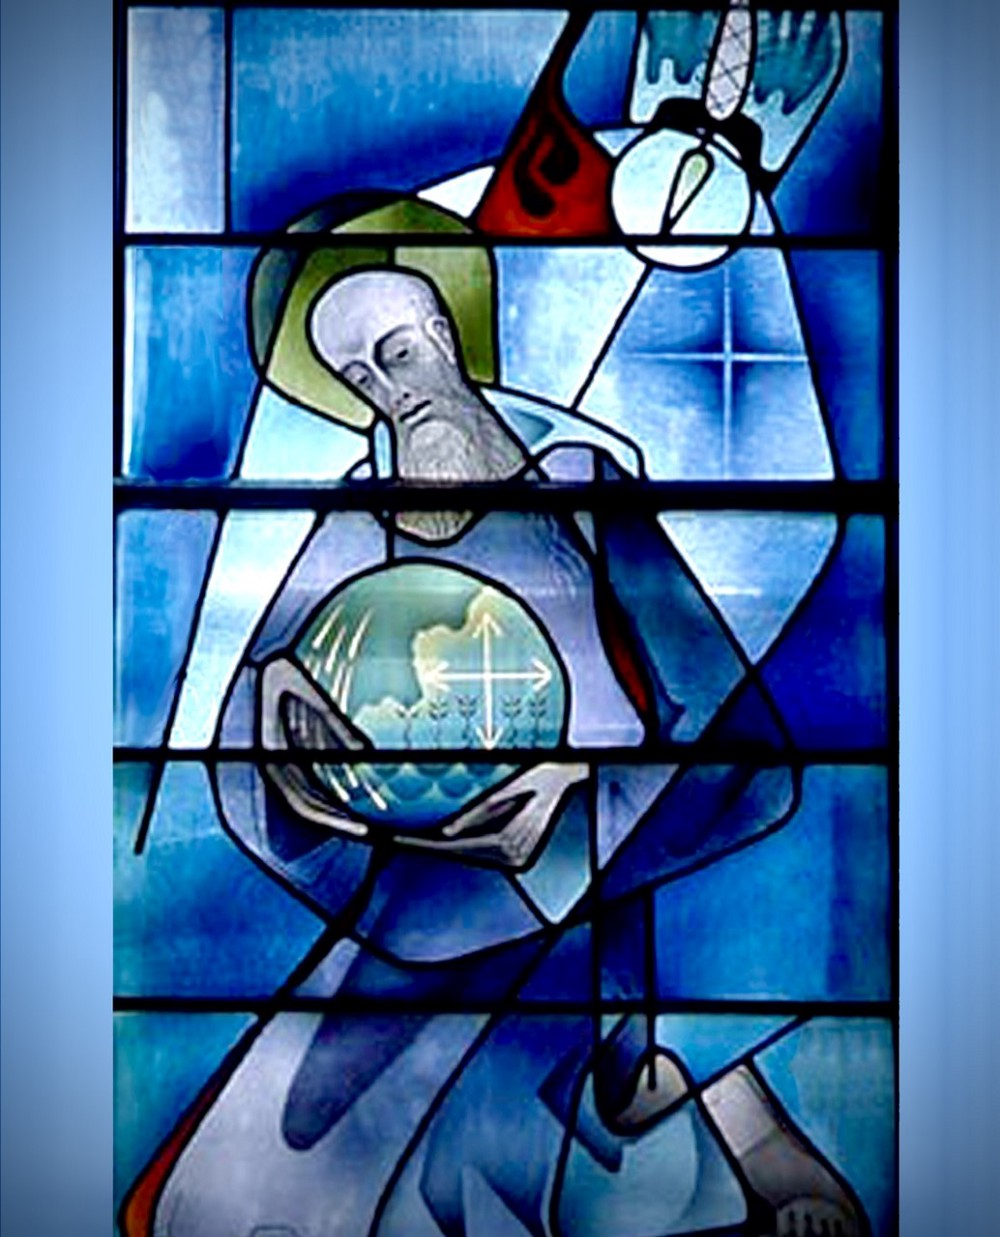 Blue color stained glass window in Mount St. Scholastica Monastery of St. Benedict holding globe of the world in his hands.